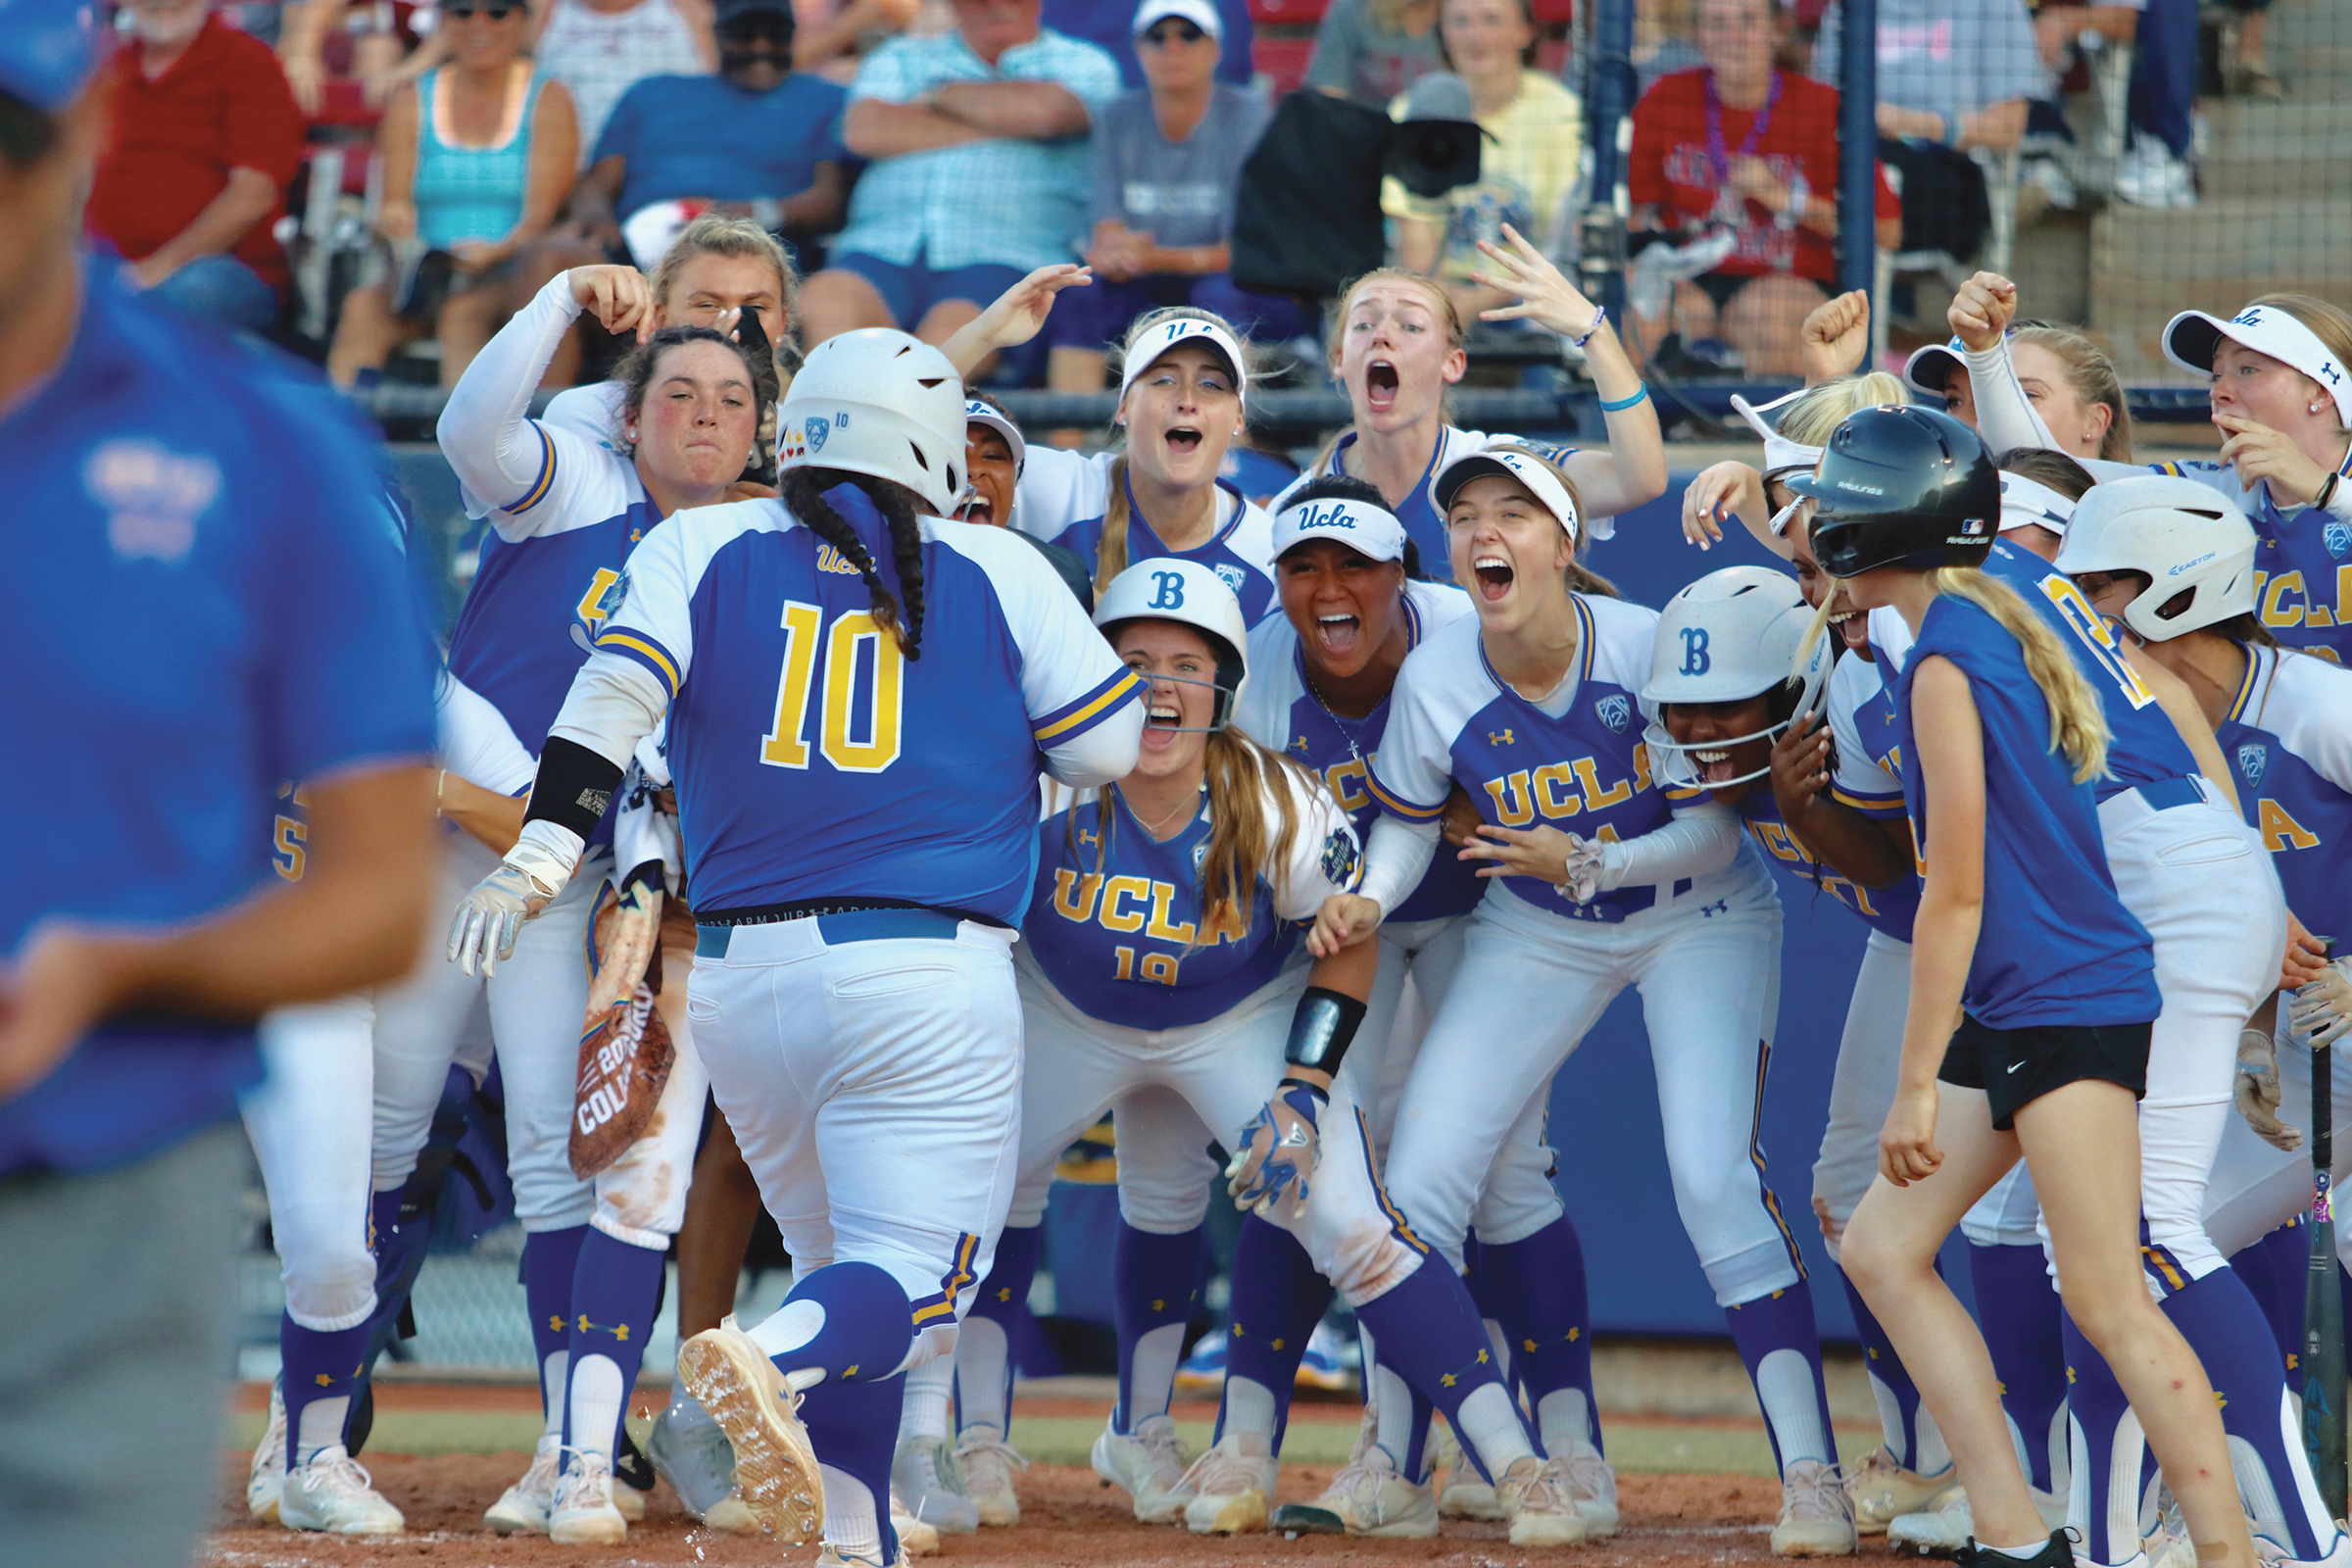 Malia Quarles (10) of Cerritos is greeted by teammates after hitting a go ahead homer during WCWS. (UCLA courtesy photo)